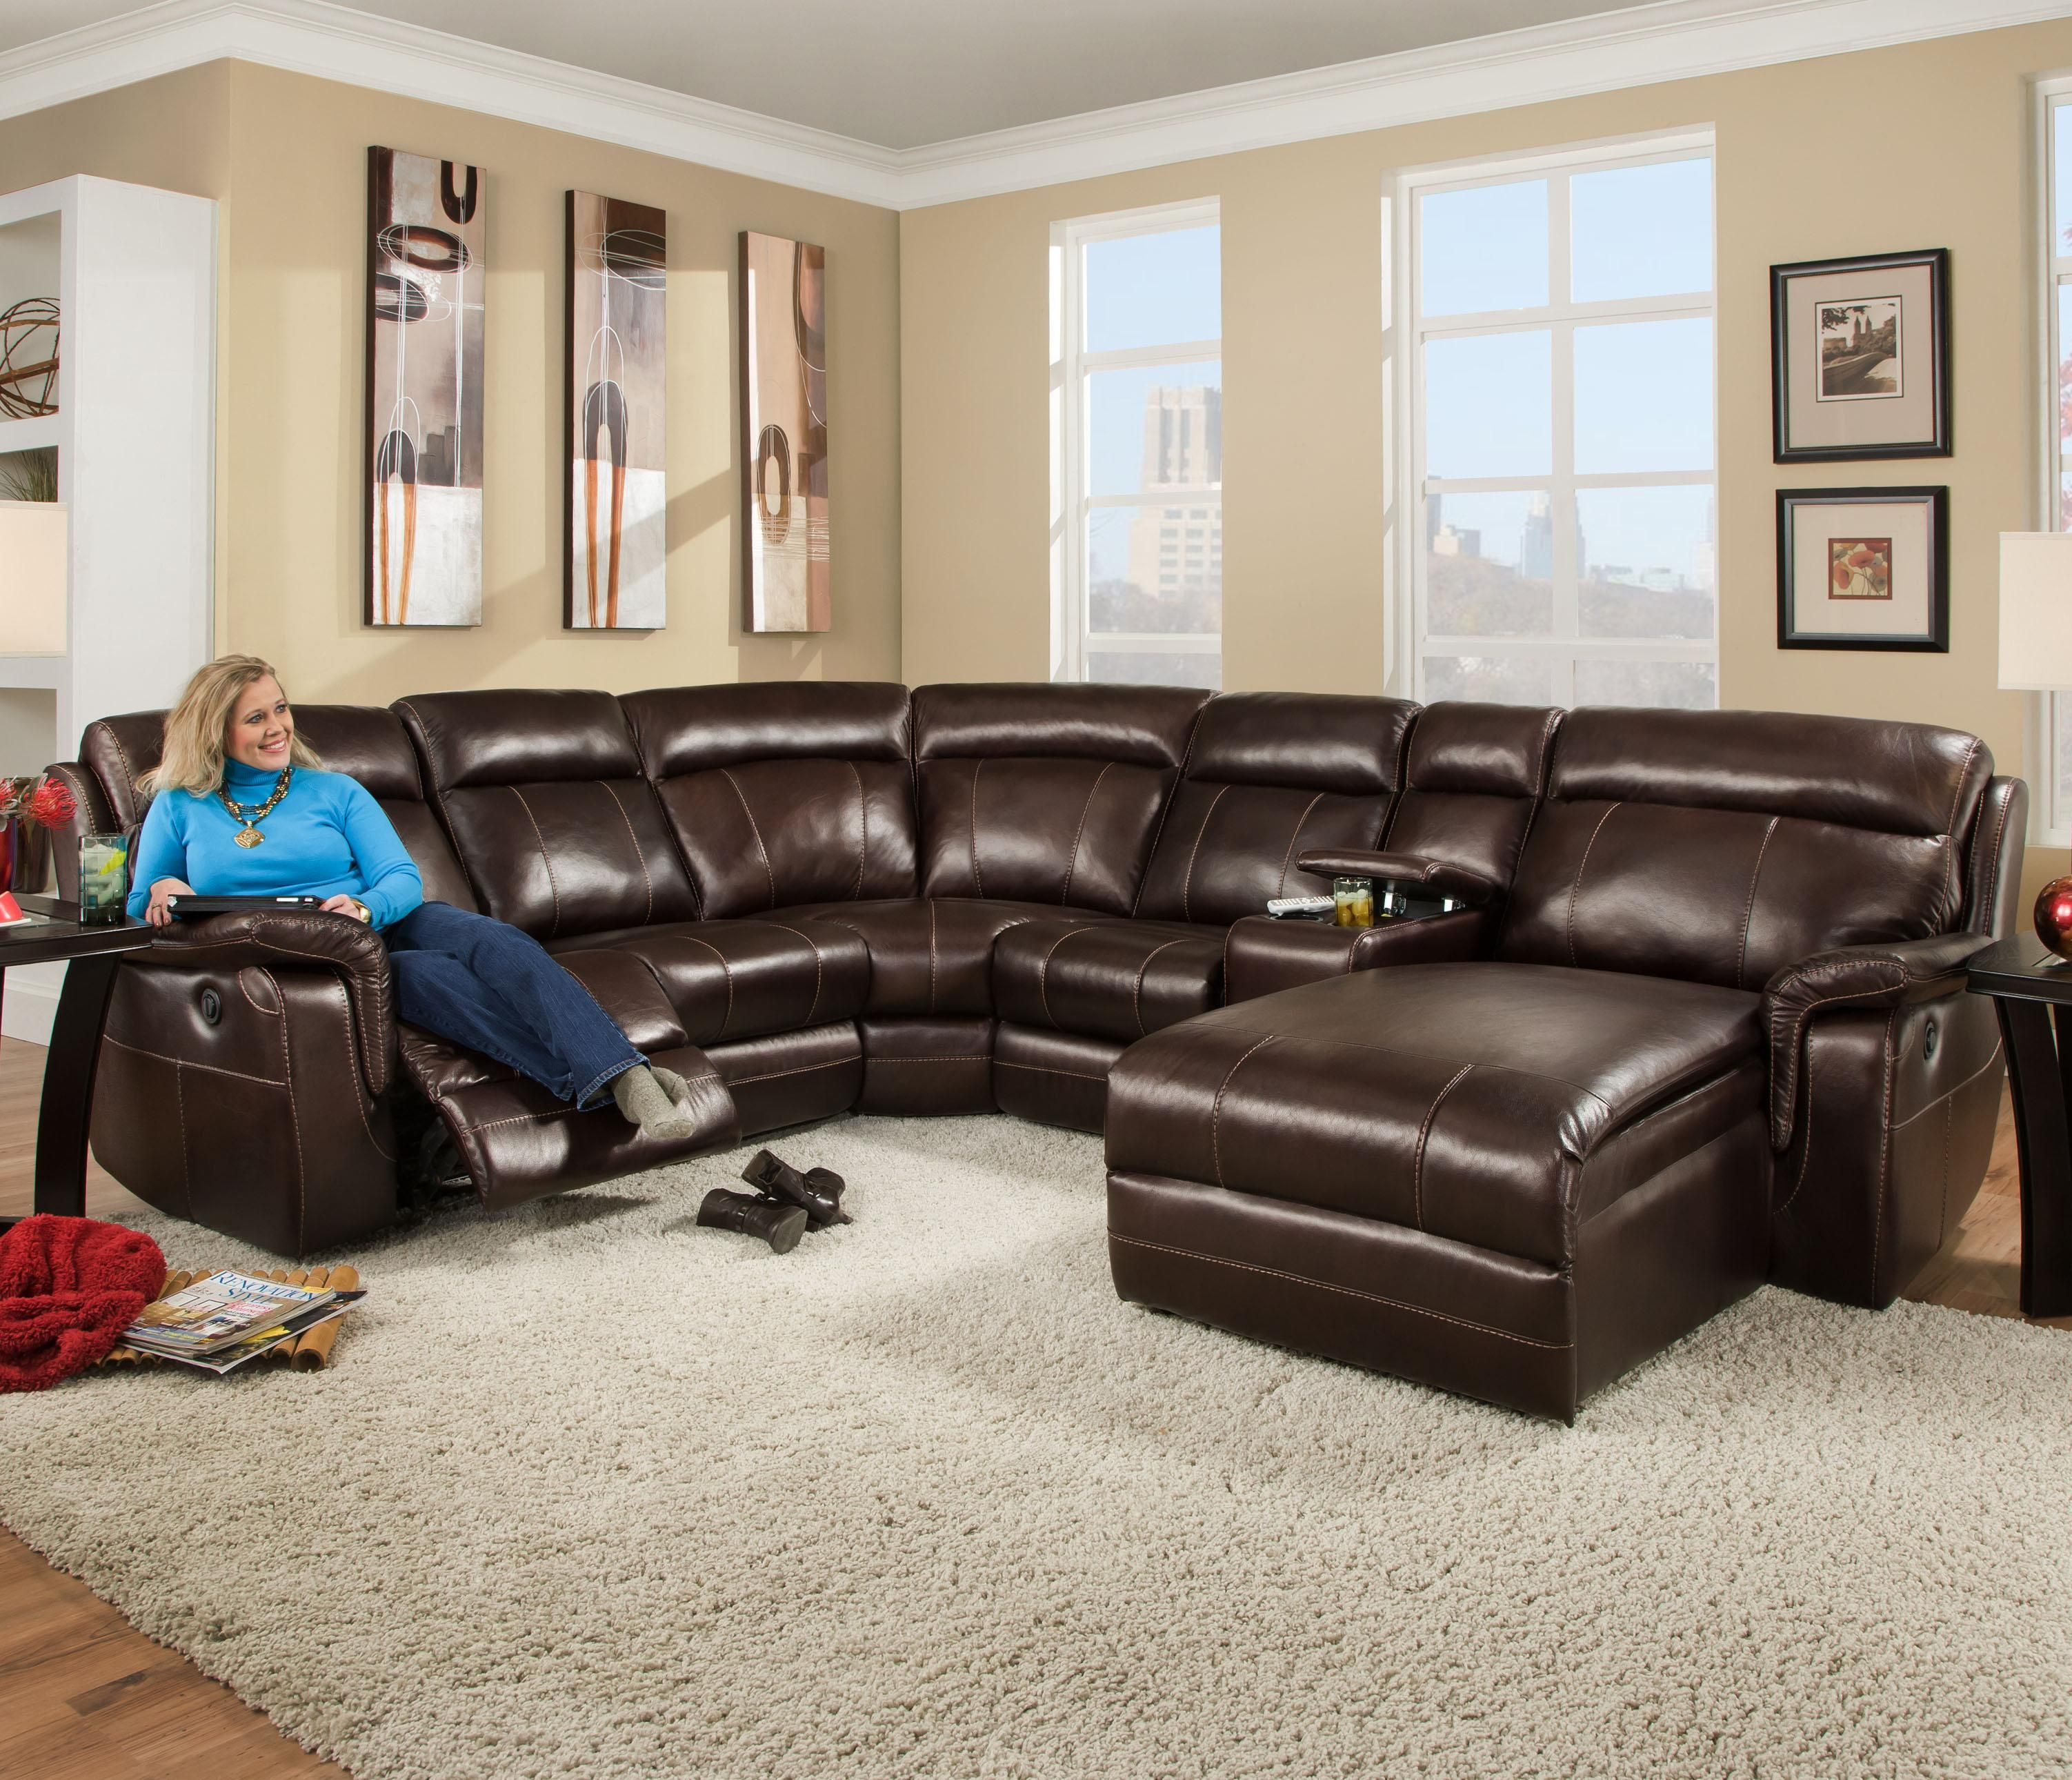 Groovy 862 Sectional Sofa With 5 Seats By Corinthian Home Dailytribune Chair Design For Home Dailytribuneorg